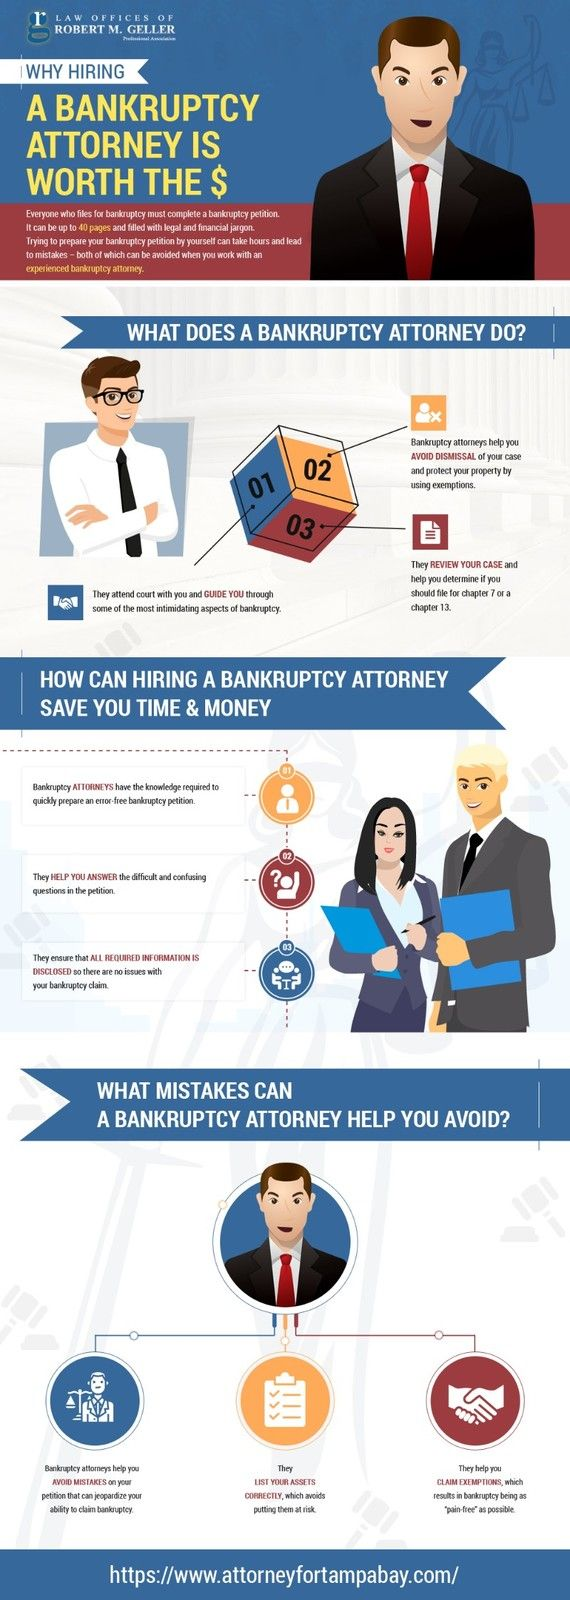 Why hiring a bankruptcy attorney is worth the money